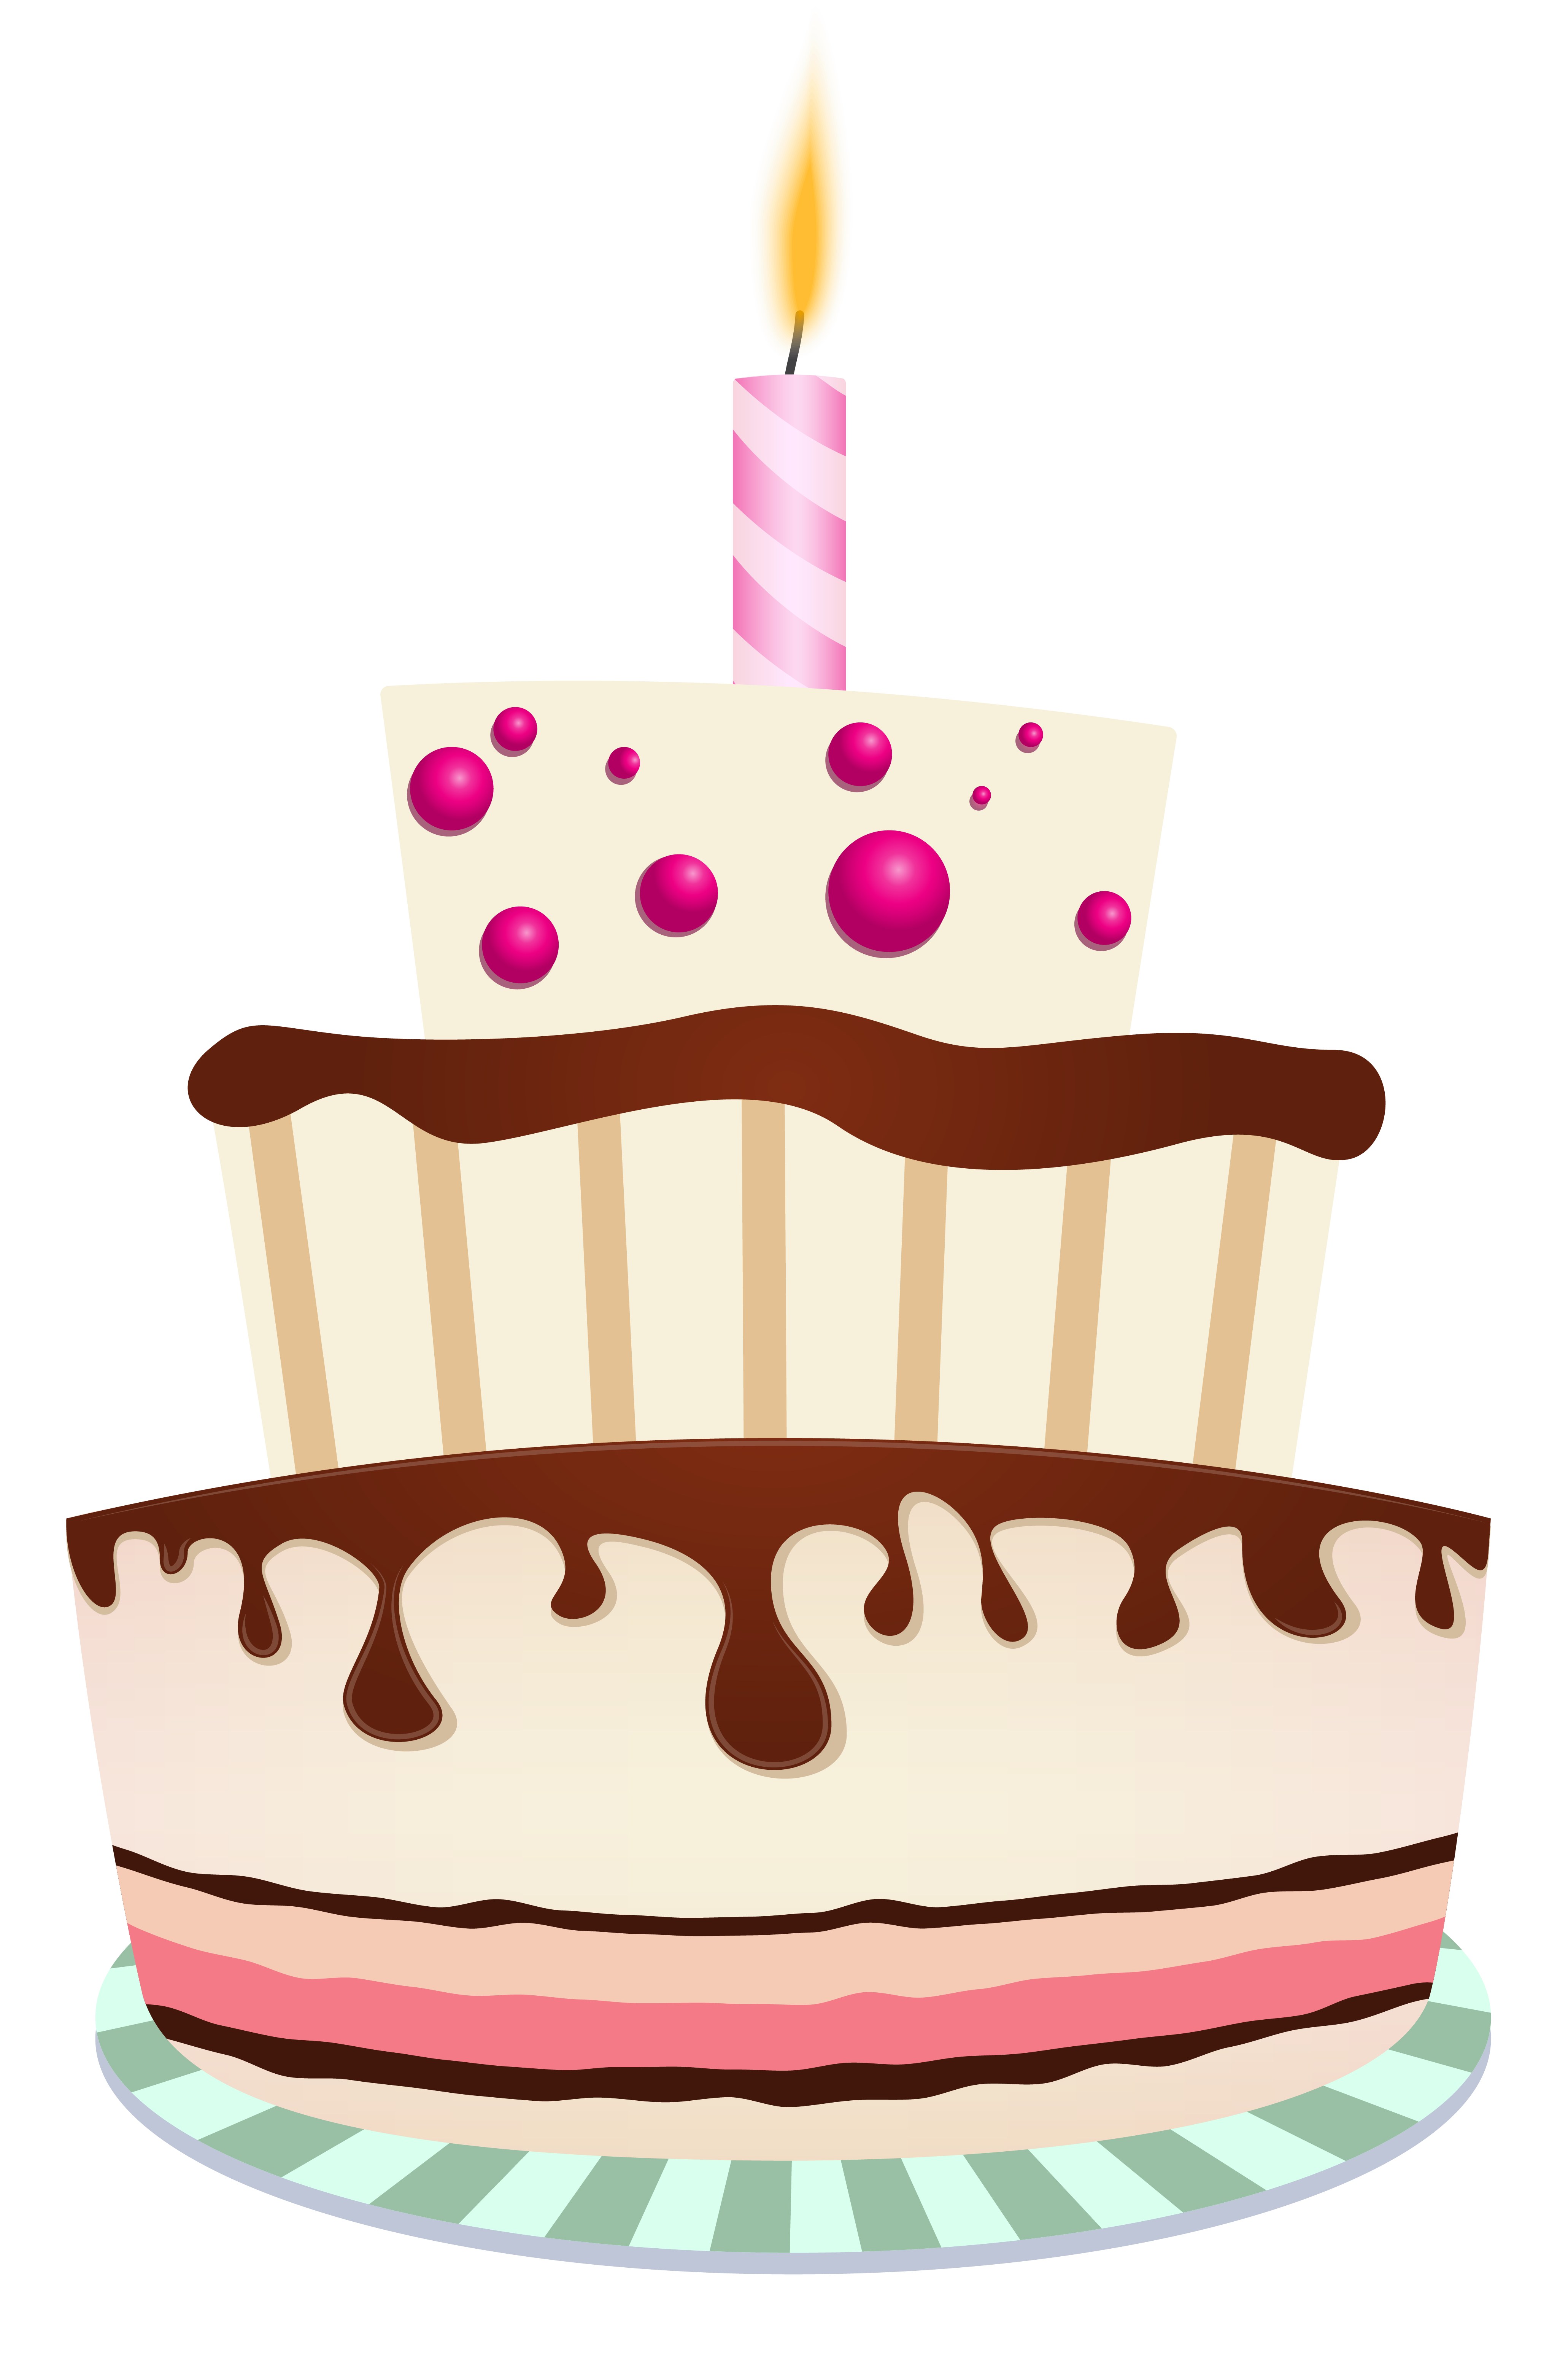 Happy birthday cake with candles clipart graphic transparent download Birthday Cake with One Candle PNG Clipart Image graphic transparent download